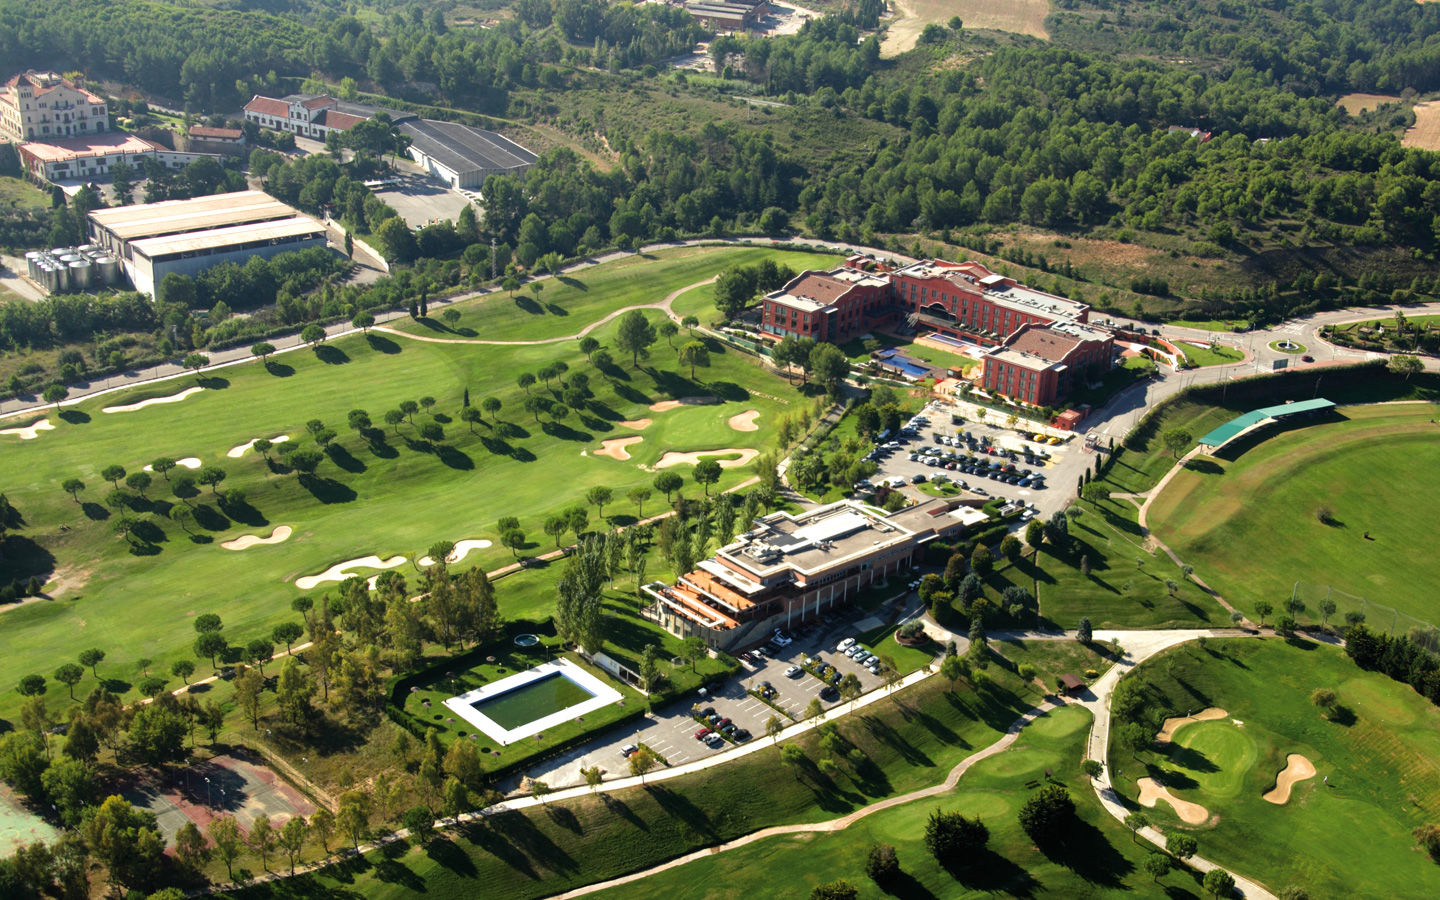 Barcelona golf and spa resort cover picture